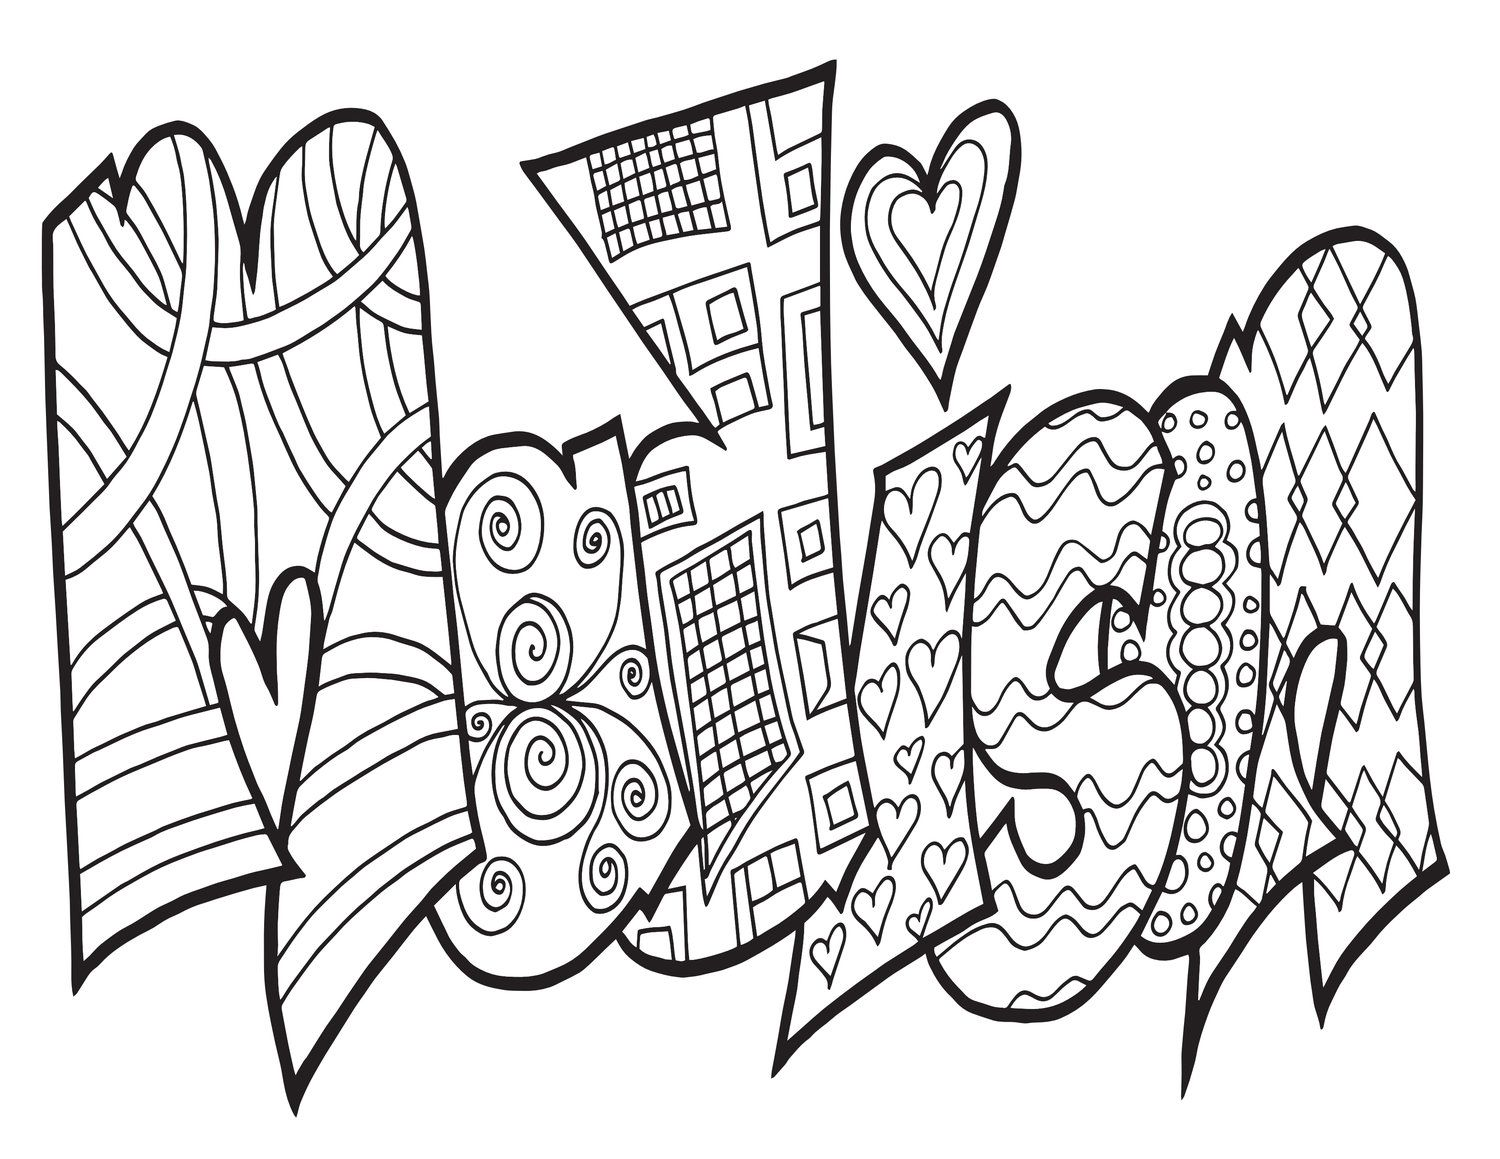 Click Here To Download Your Free Madison Coloring Page Get Any Name Or Word As A Hand Dr Love Coloring Pages Unique Coloring Pages Printable Coloring Pages